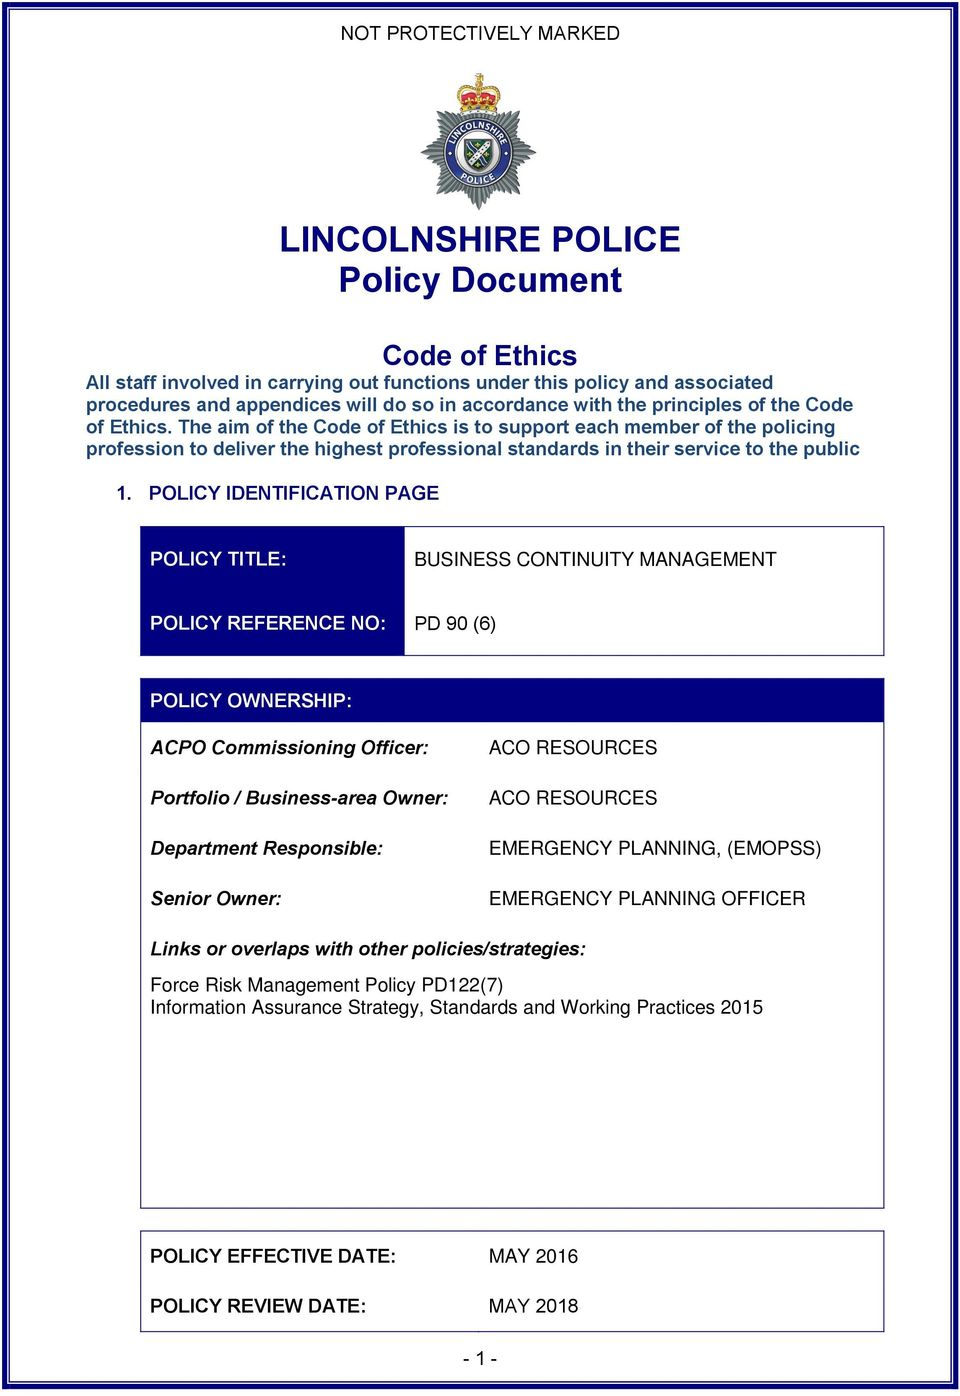 POLICY IDENTIFICATION PAGE POLICY TITLE: BUSINESS CONTINUITY MANAGEMENT POLICY REFERENCE NO: PD 90 (6) POLICY OWNERSHIP: ACPO Commissioning Officer: Portfolio / Business-area Owner: Department